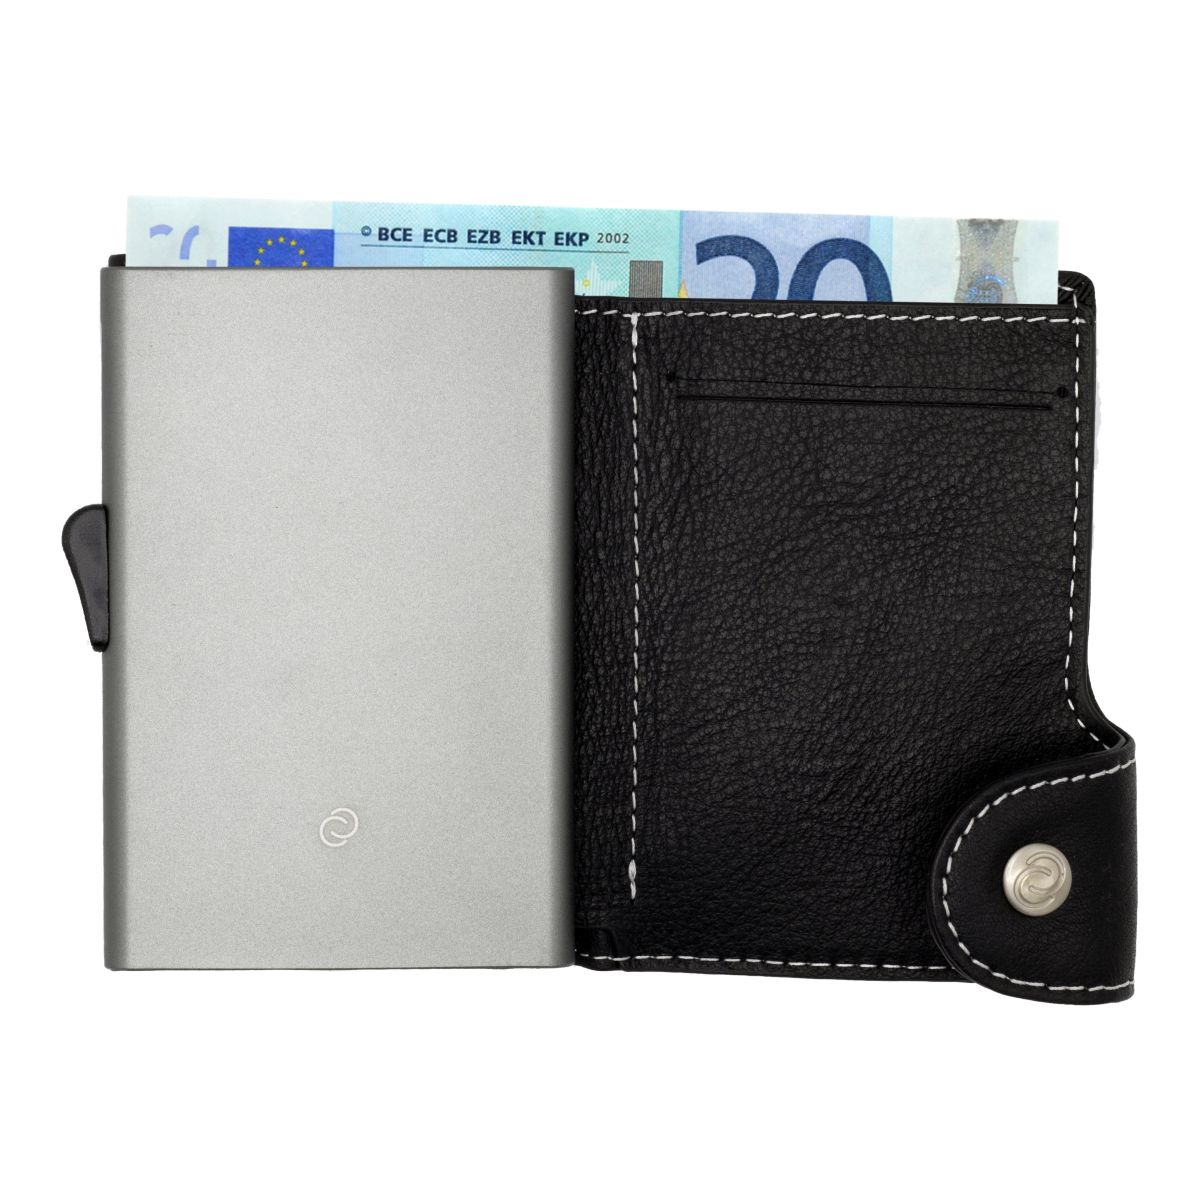 C-Secure Aluminum Card Holder with Genuine Leather - Black / Titanium